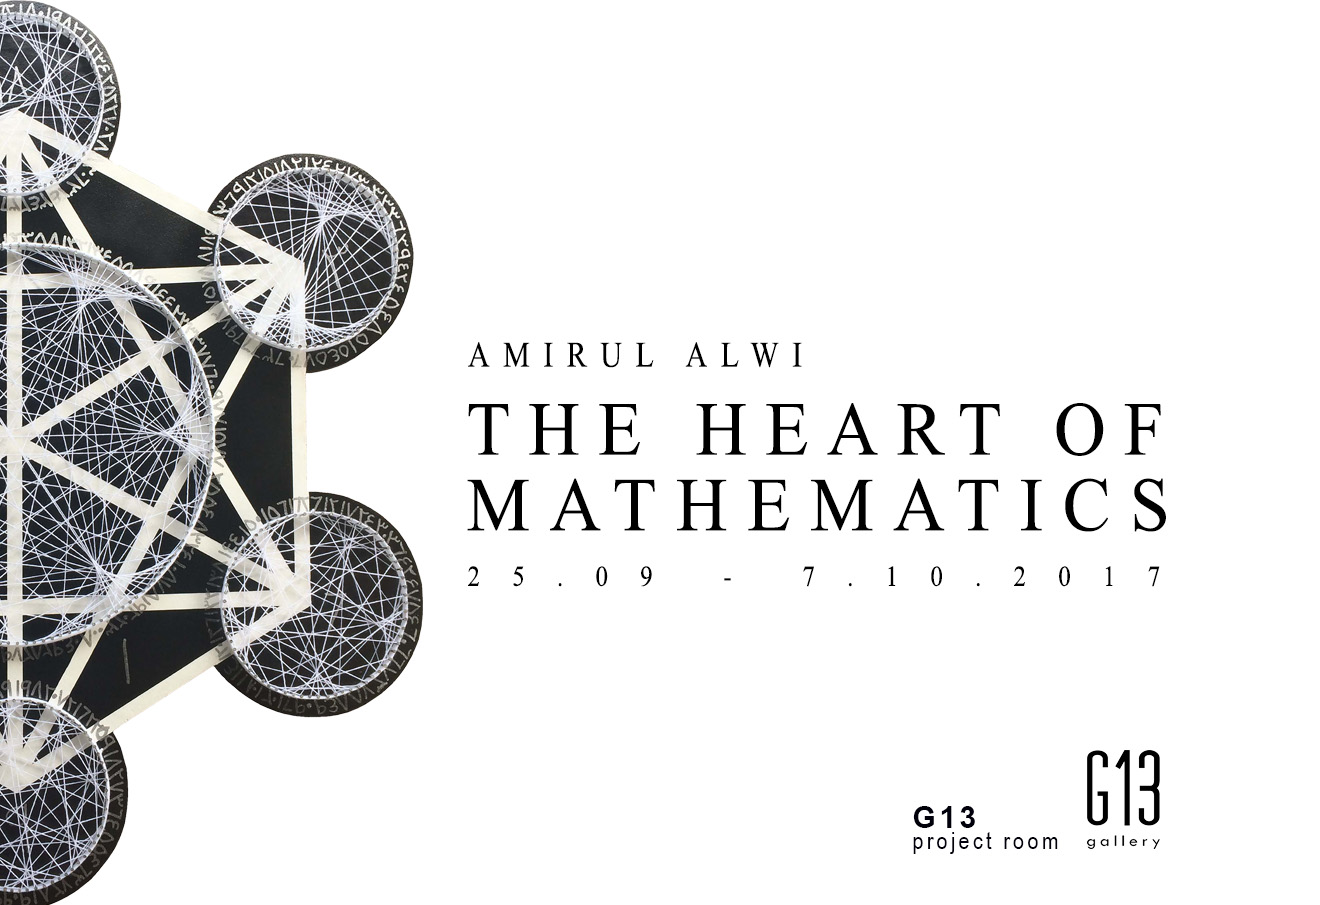 G13 Project Room : The Heart of Mathematic